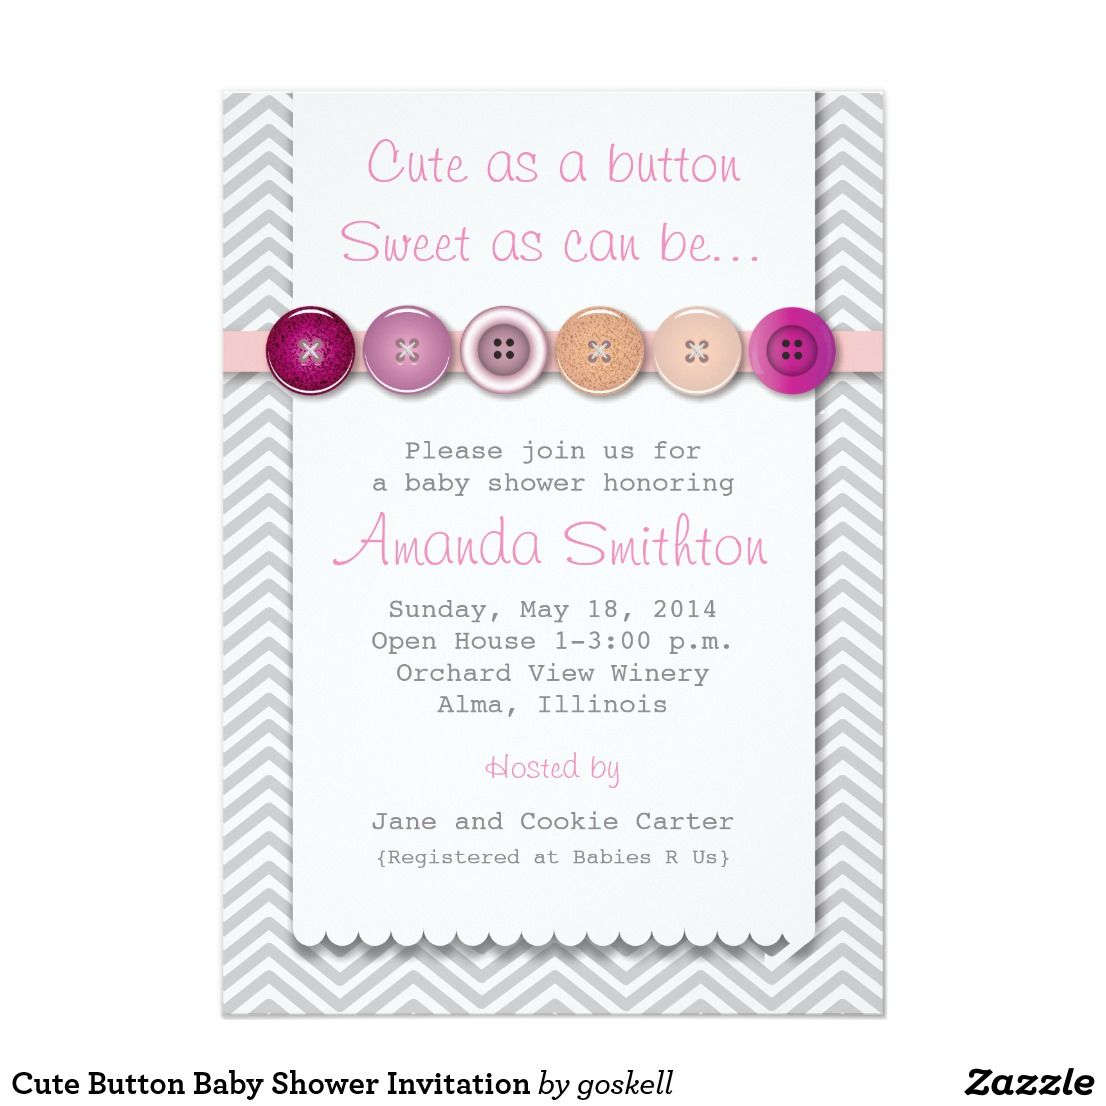 Cute Button Baby Shower Invitation | Shower invitations